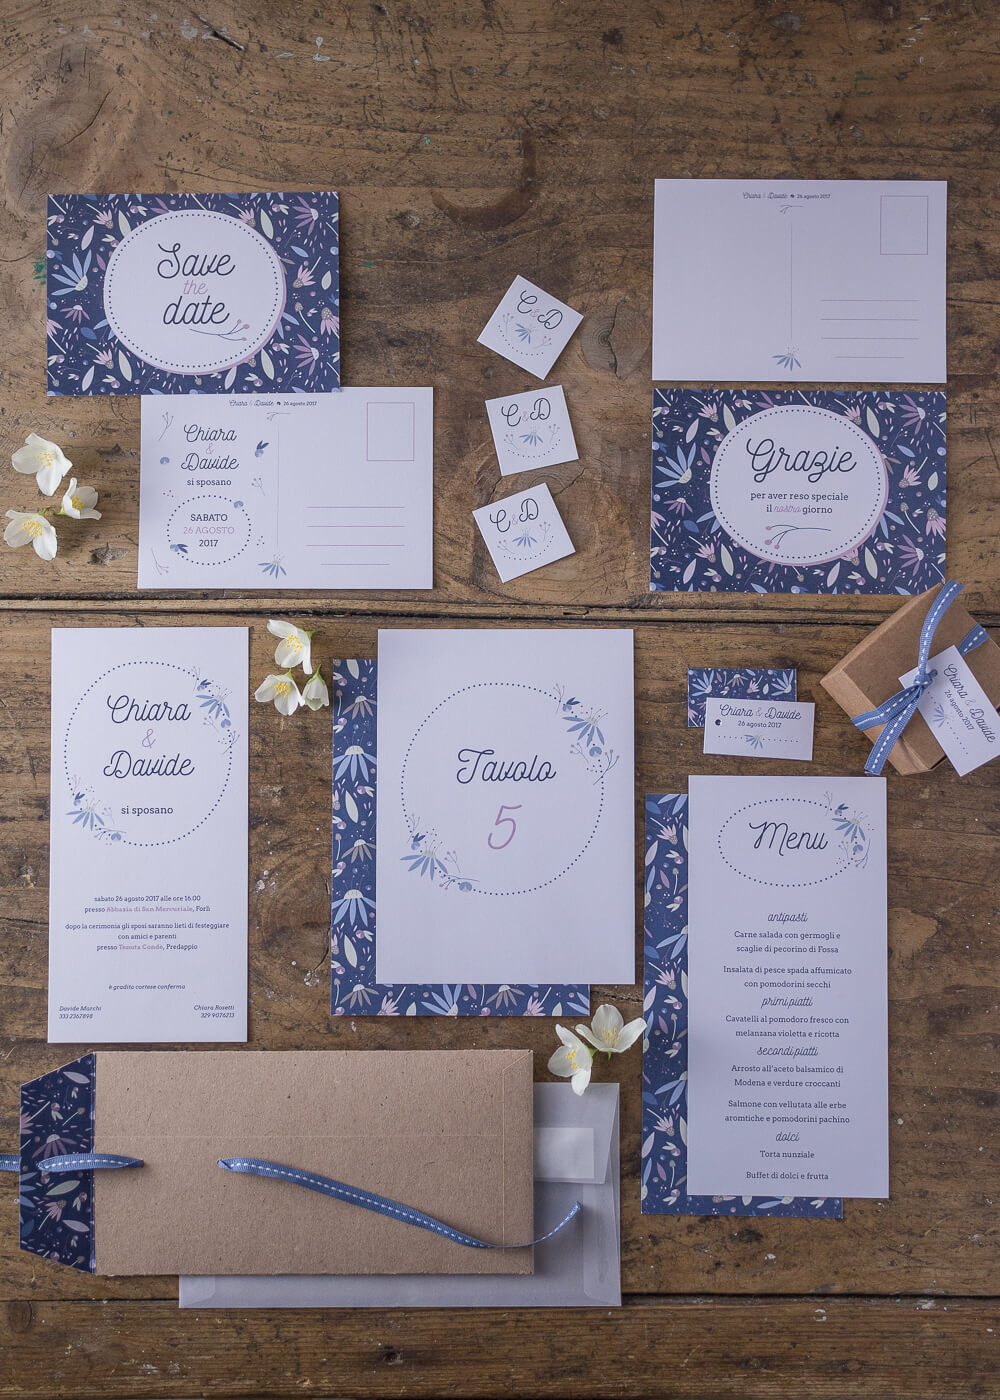 Wedding suite Echinacea - Partecipazione di matrimonio e busta in carta kraft - Lily&Sage Design